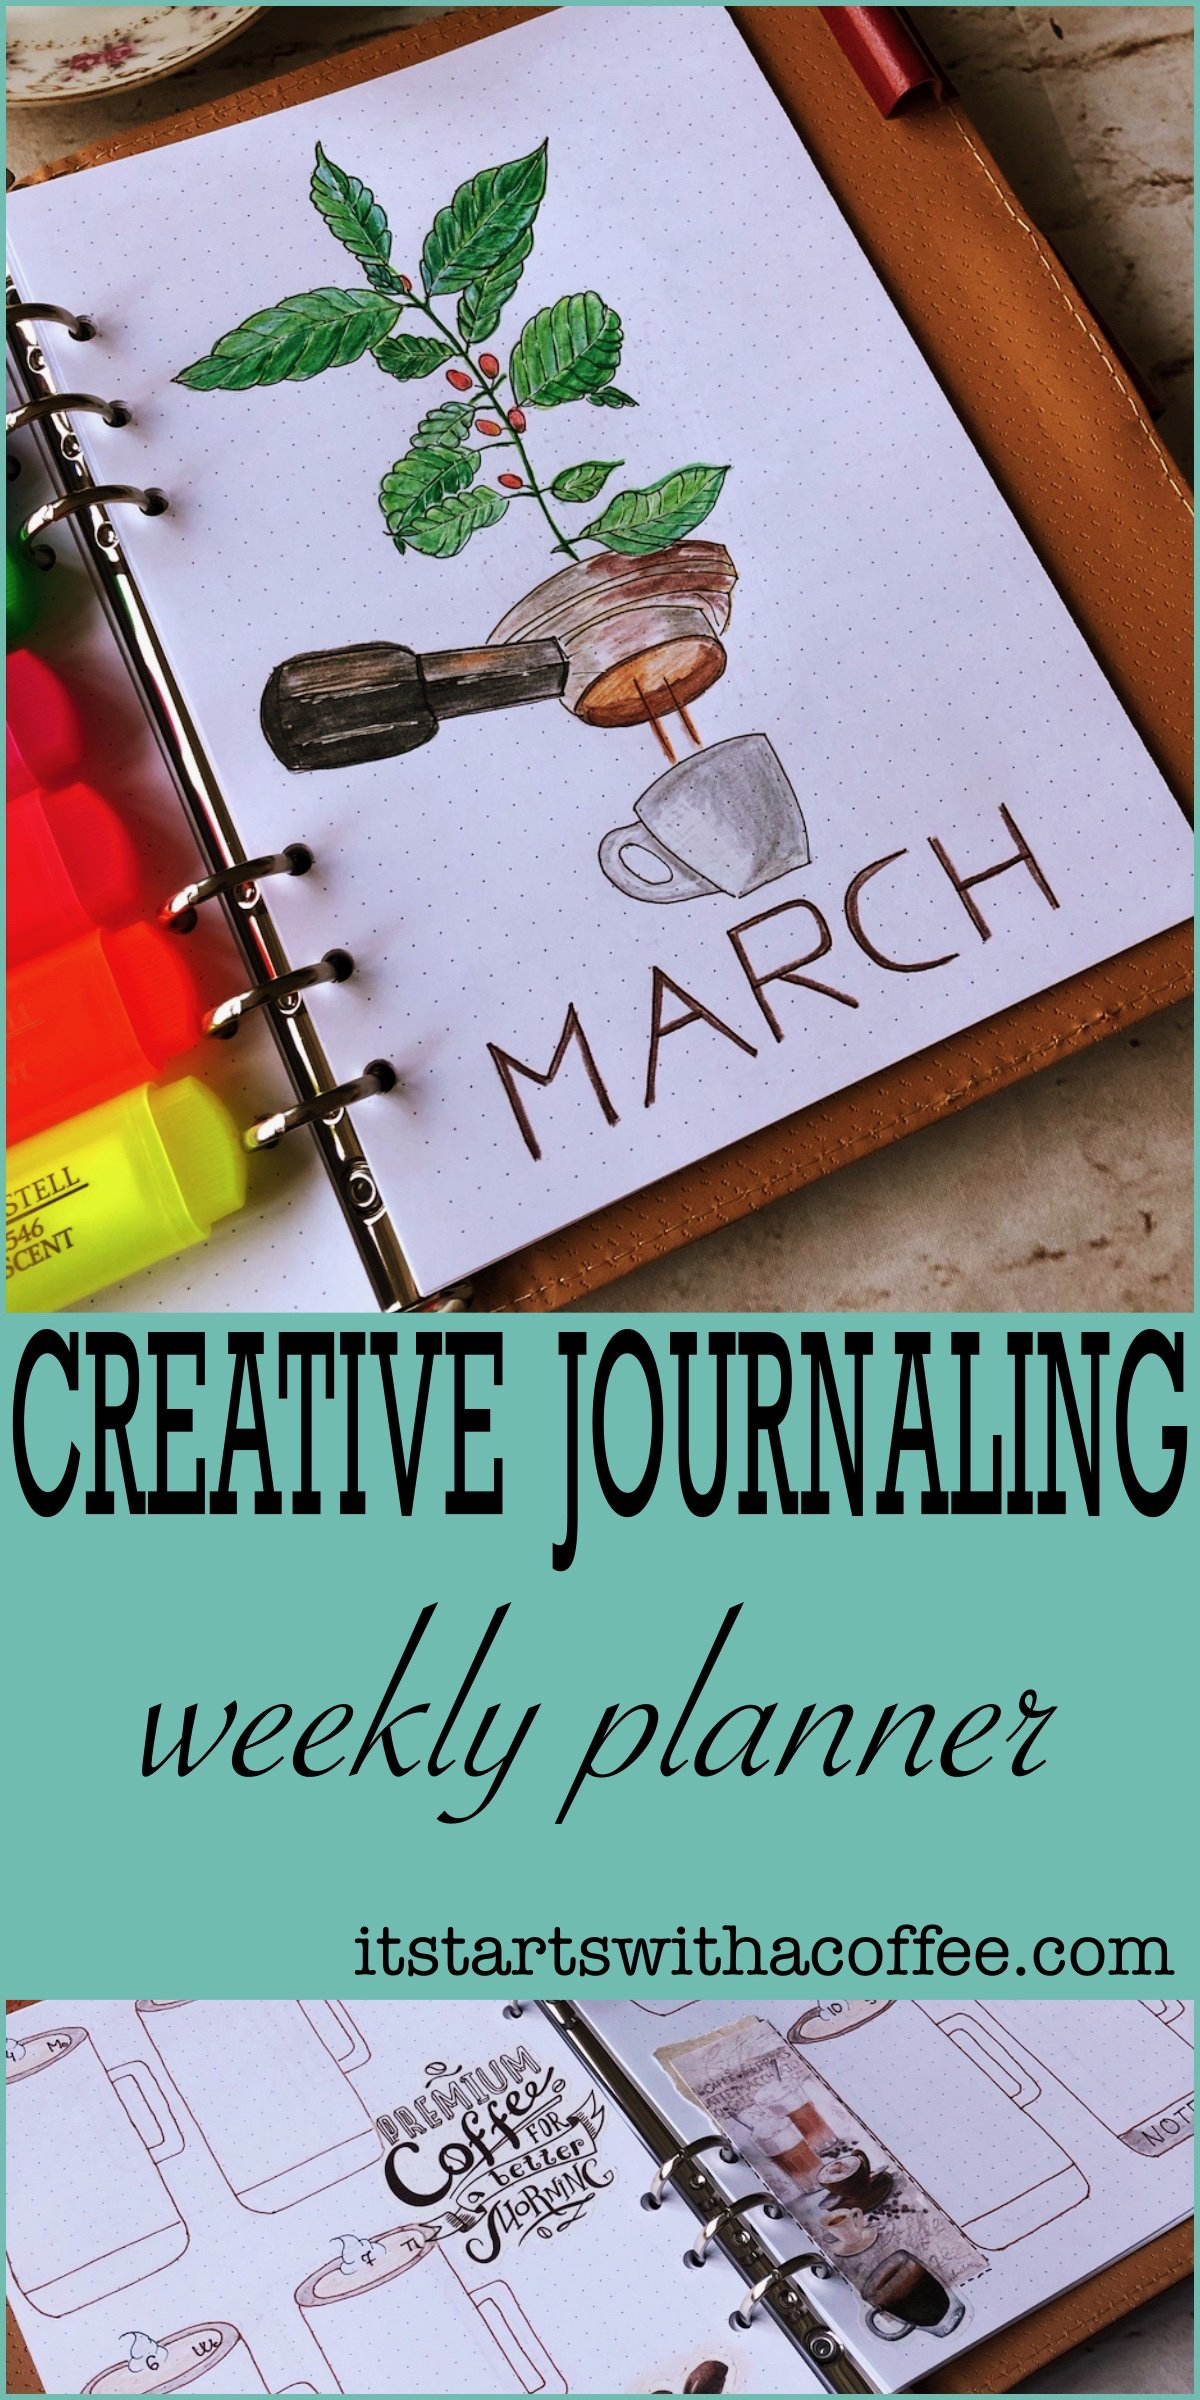 Creative journaling weekly planner – March 2019 – itstartswithacoffee.com #creativejournaling #weekly #weeklyplanner #March #planner #planning